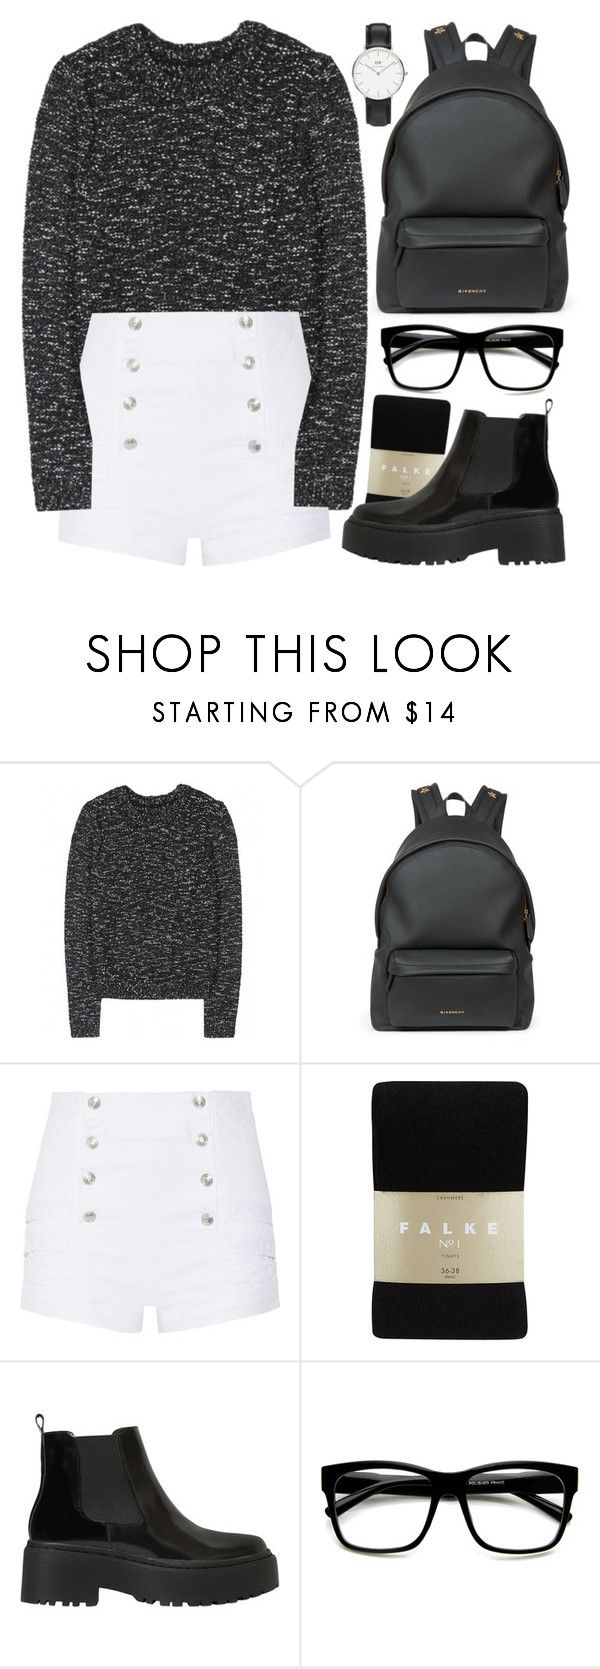 """Black shorts, black boots, black tights"" by alexandra-provenzano ❤ liked on Polyvore featuring Alice + Olivia, Givenchy, Pierre Balmain, Falke, Jeffrey Campbell, ZeroUV and Daniel Wellington"